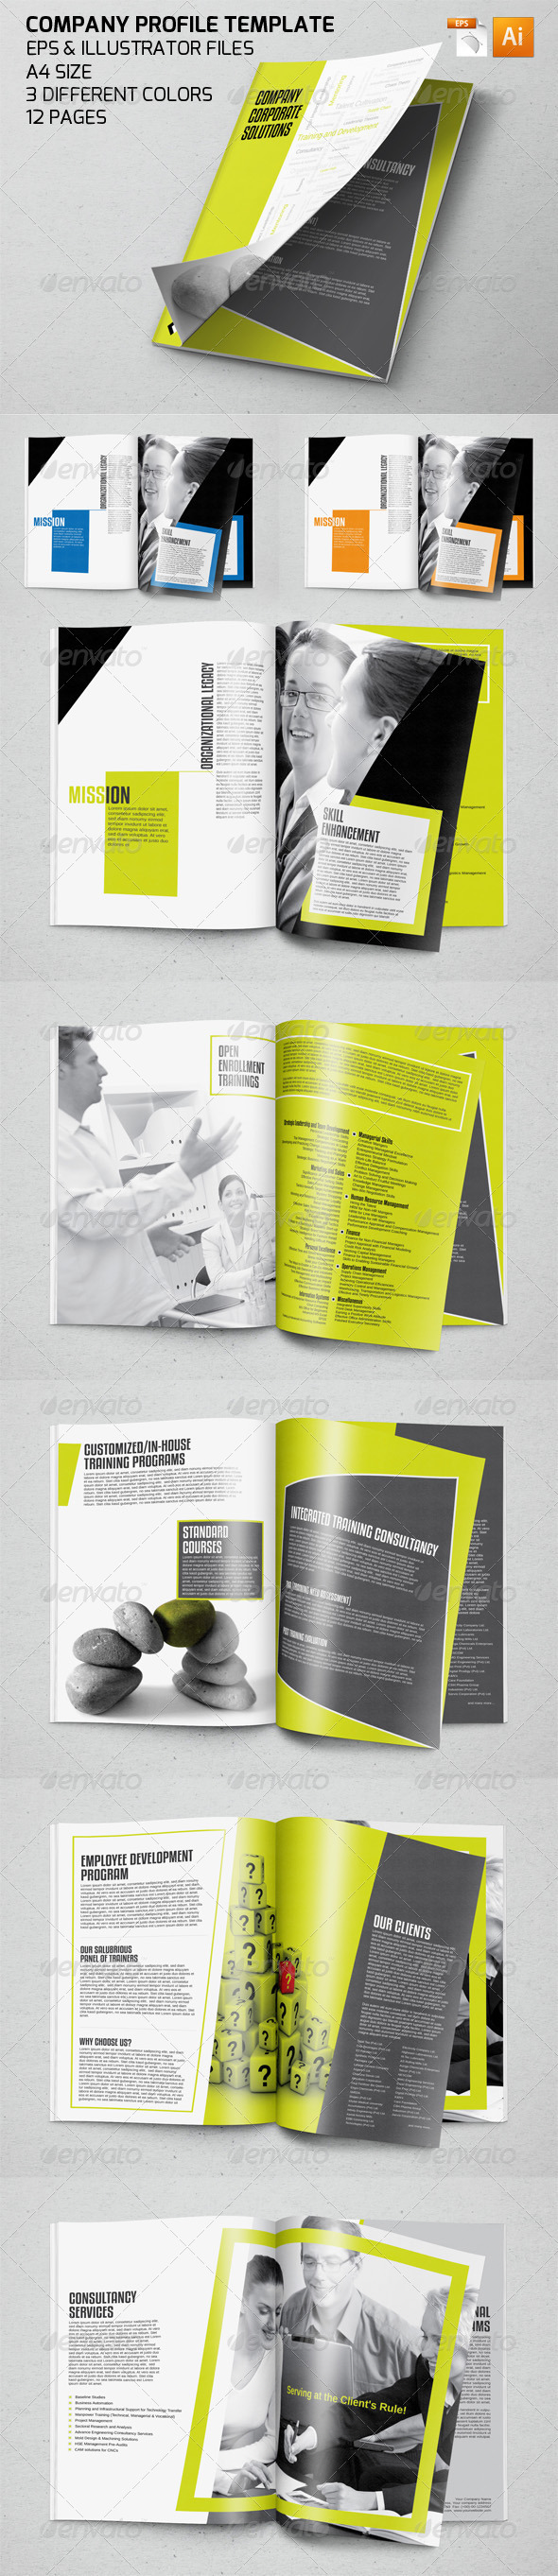 Professional Company Profile Template by ZONKASH | GraphicRiver